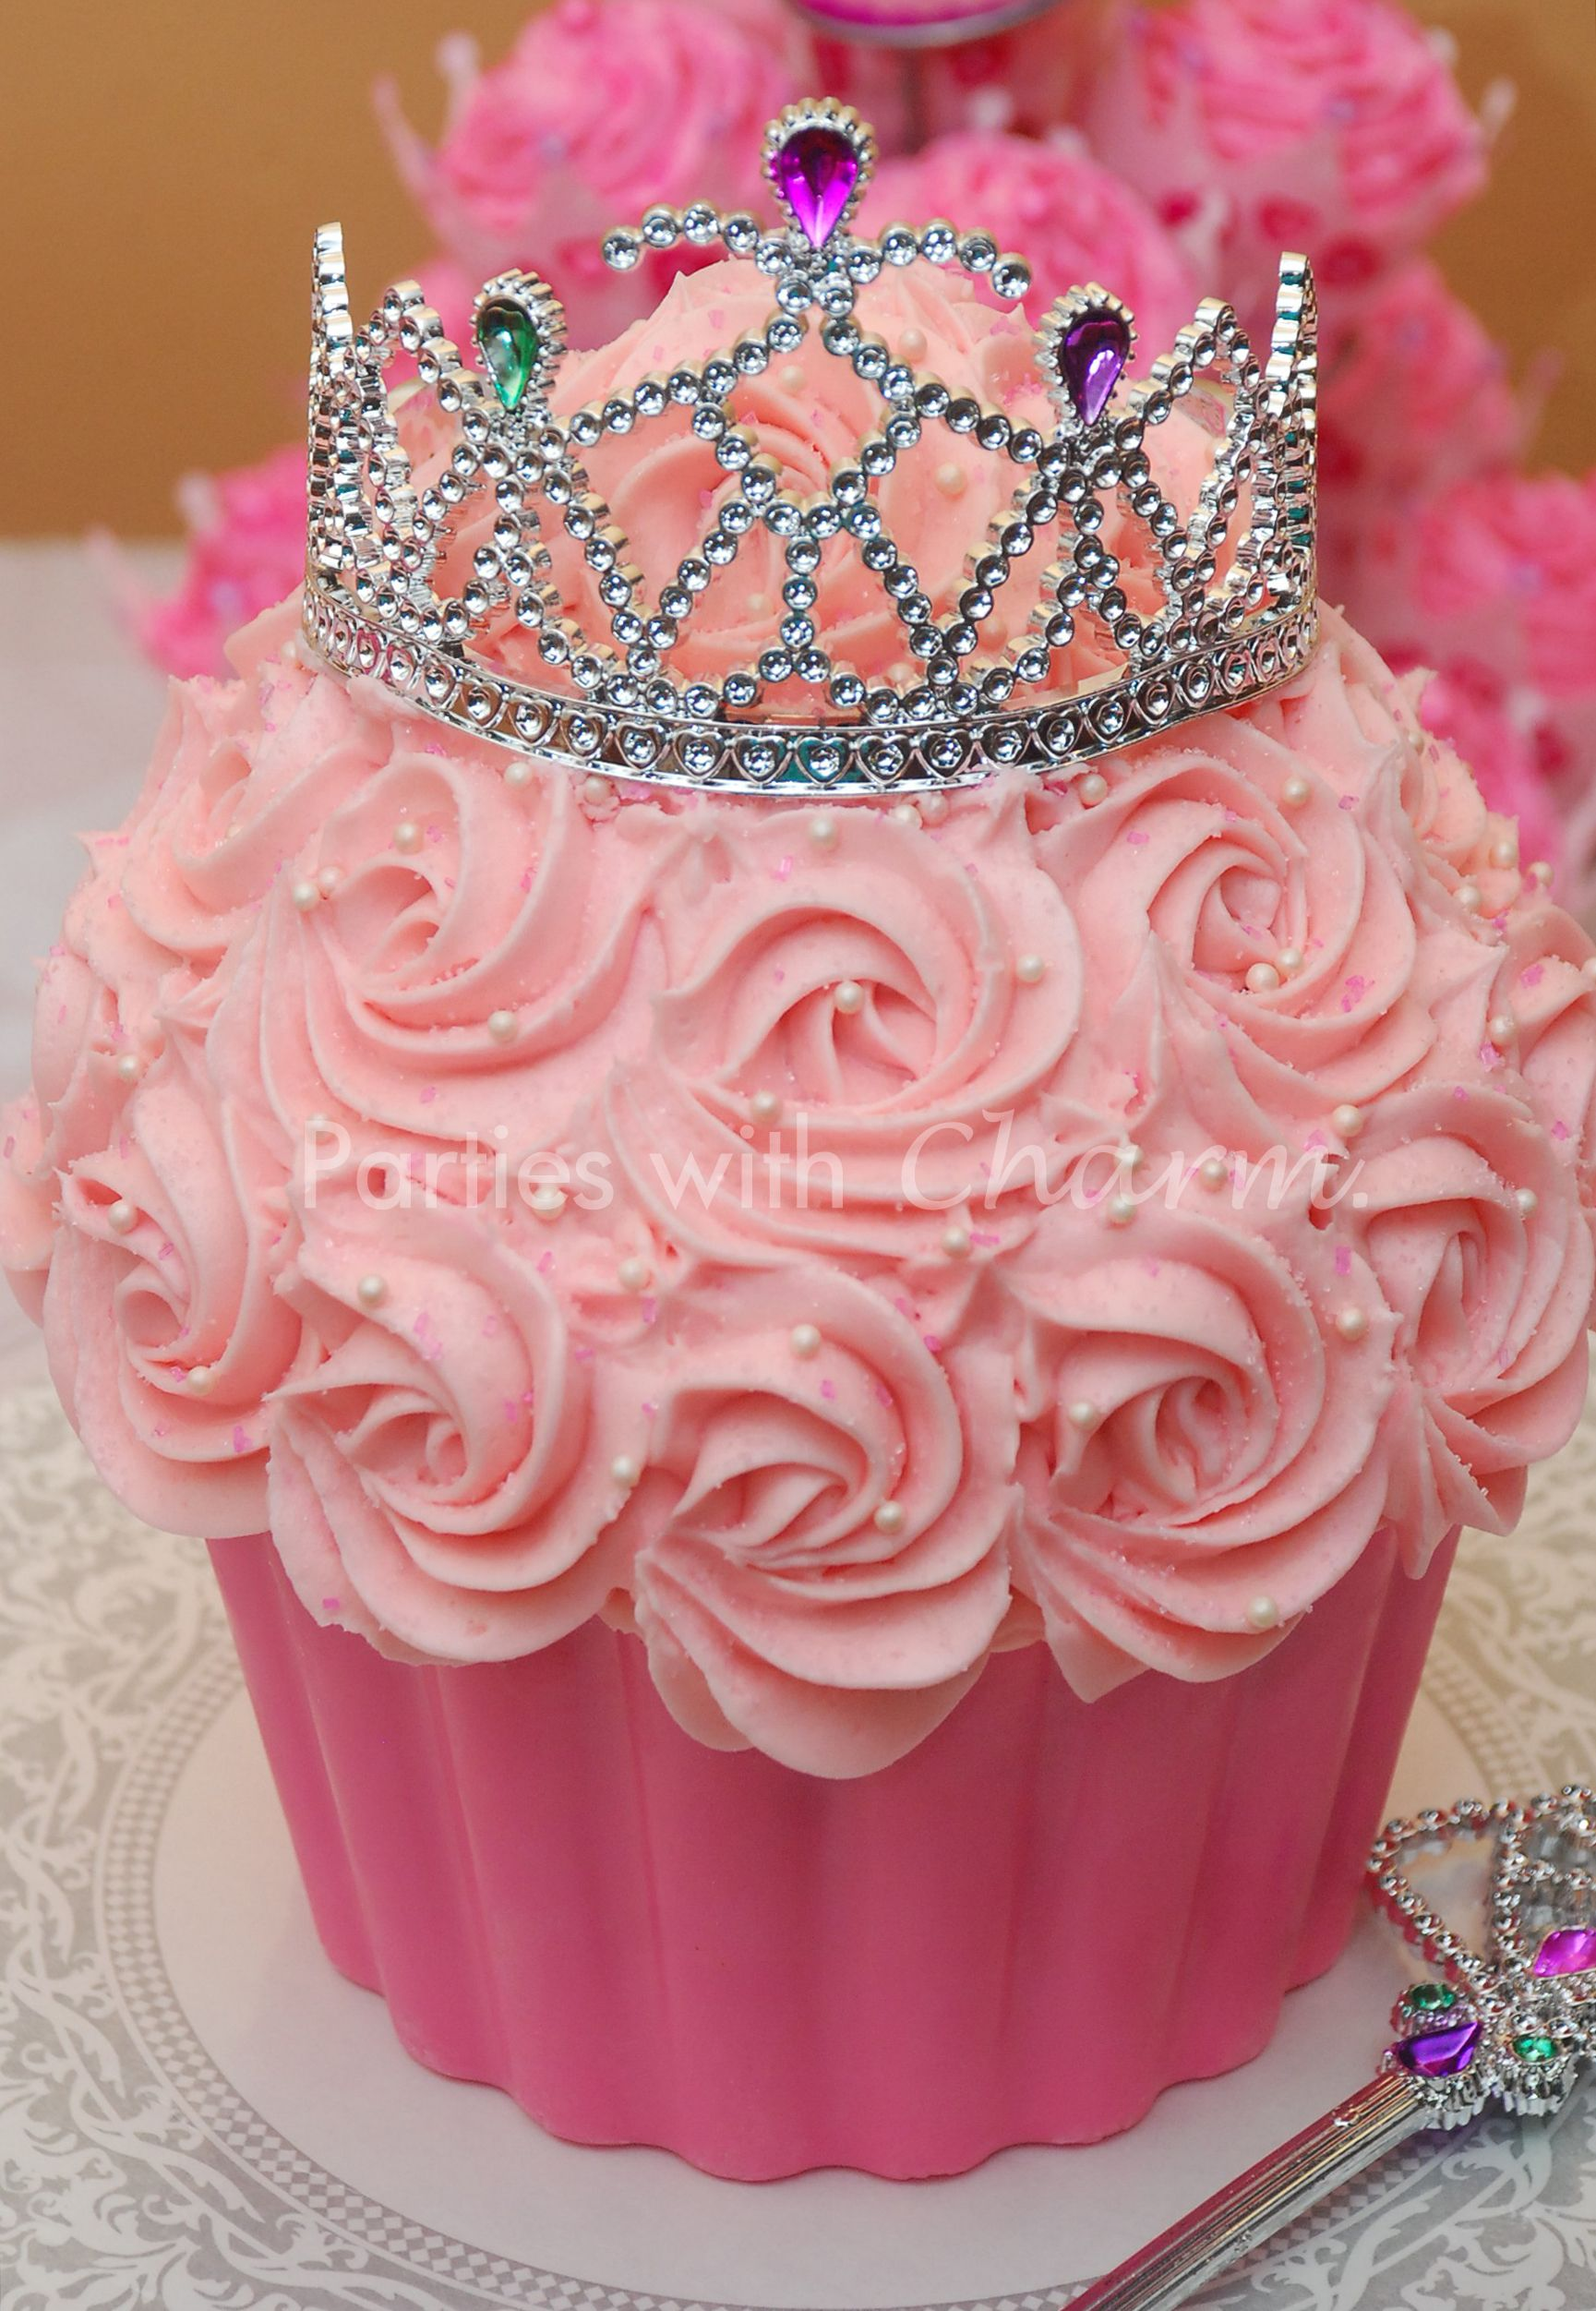 princess cupcake cake with tiara for princess baby shower or birthday